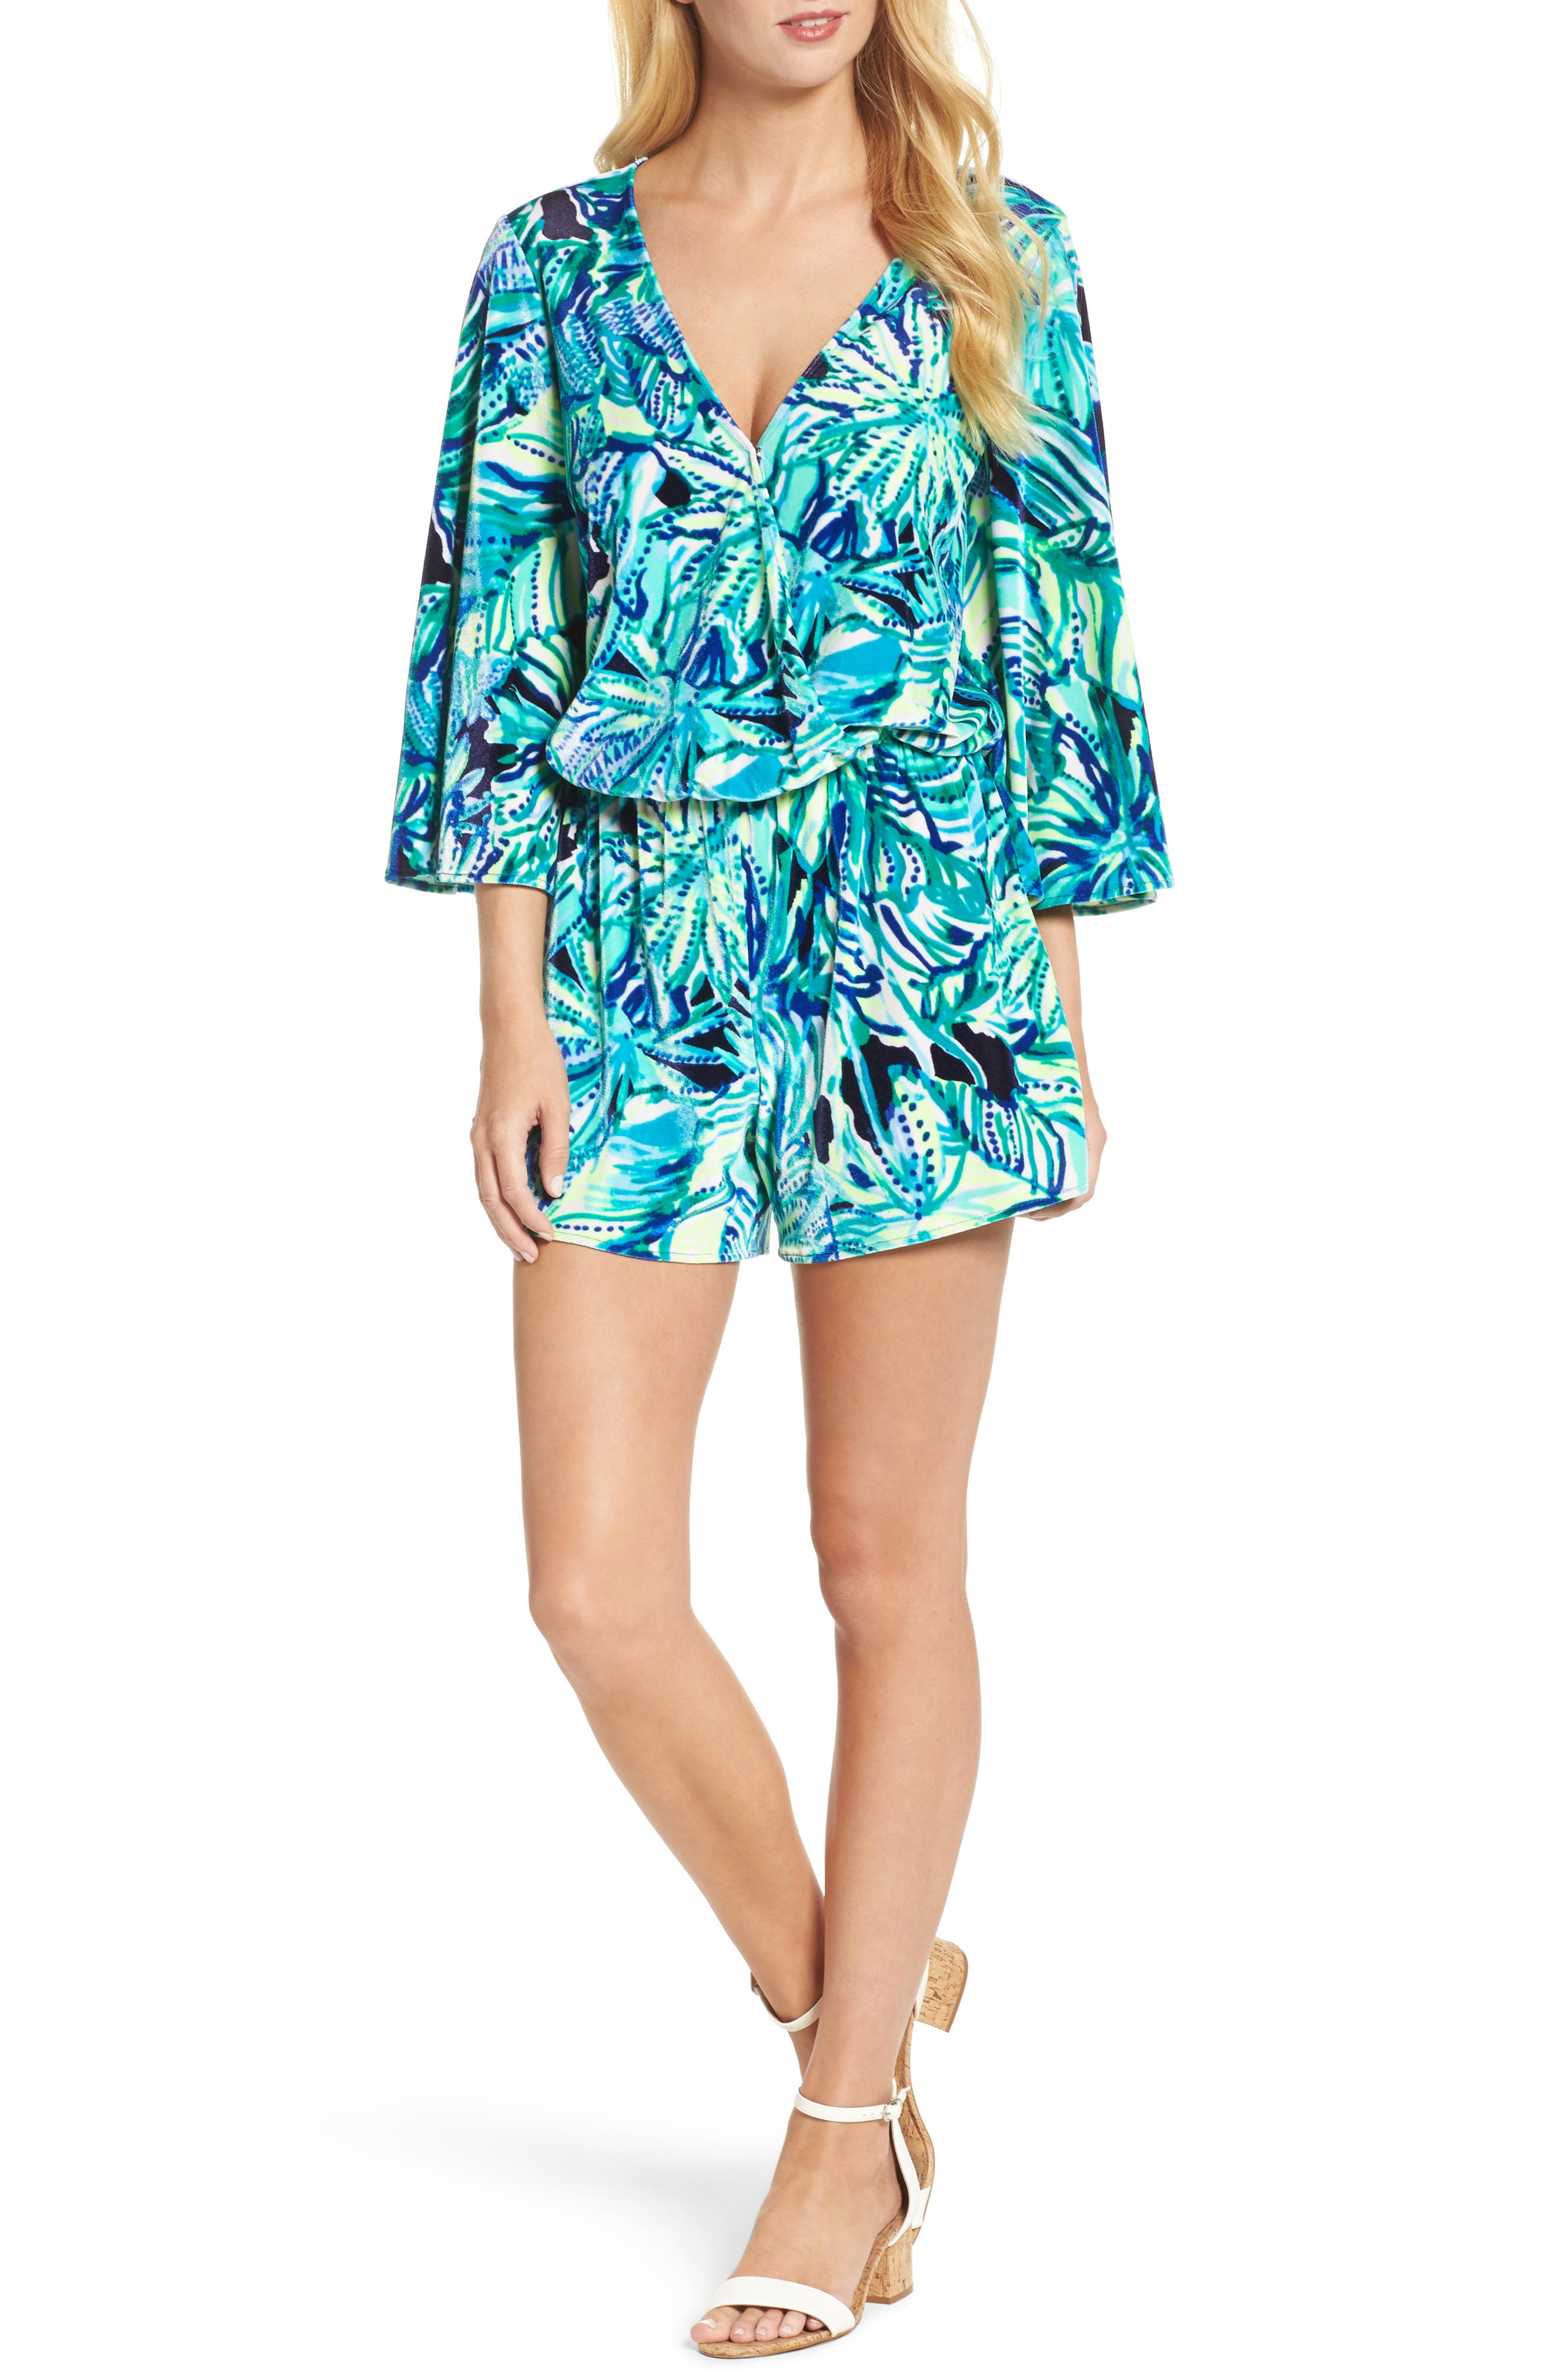 Lily Pulitzer<sup>®</sup> Viviana Romper,                             Main thumbnail 1, color,                             Bright Navy Dally